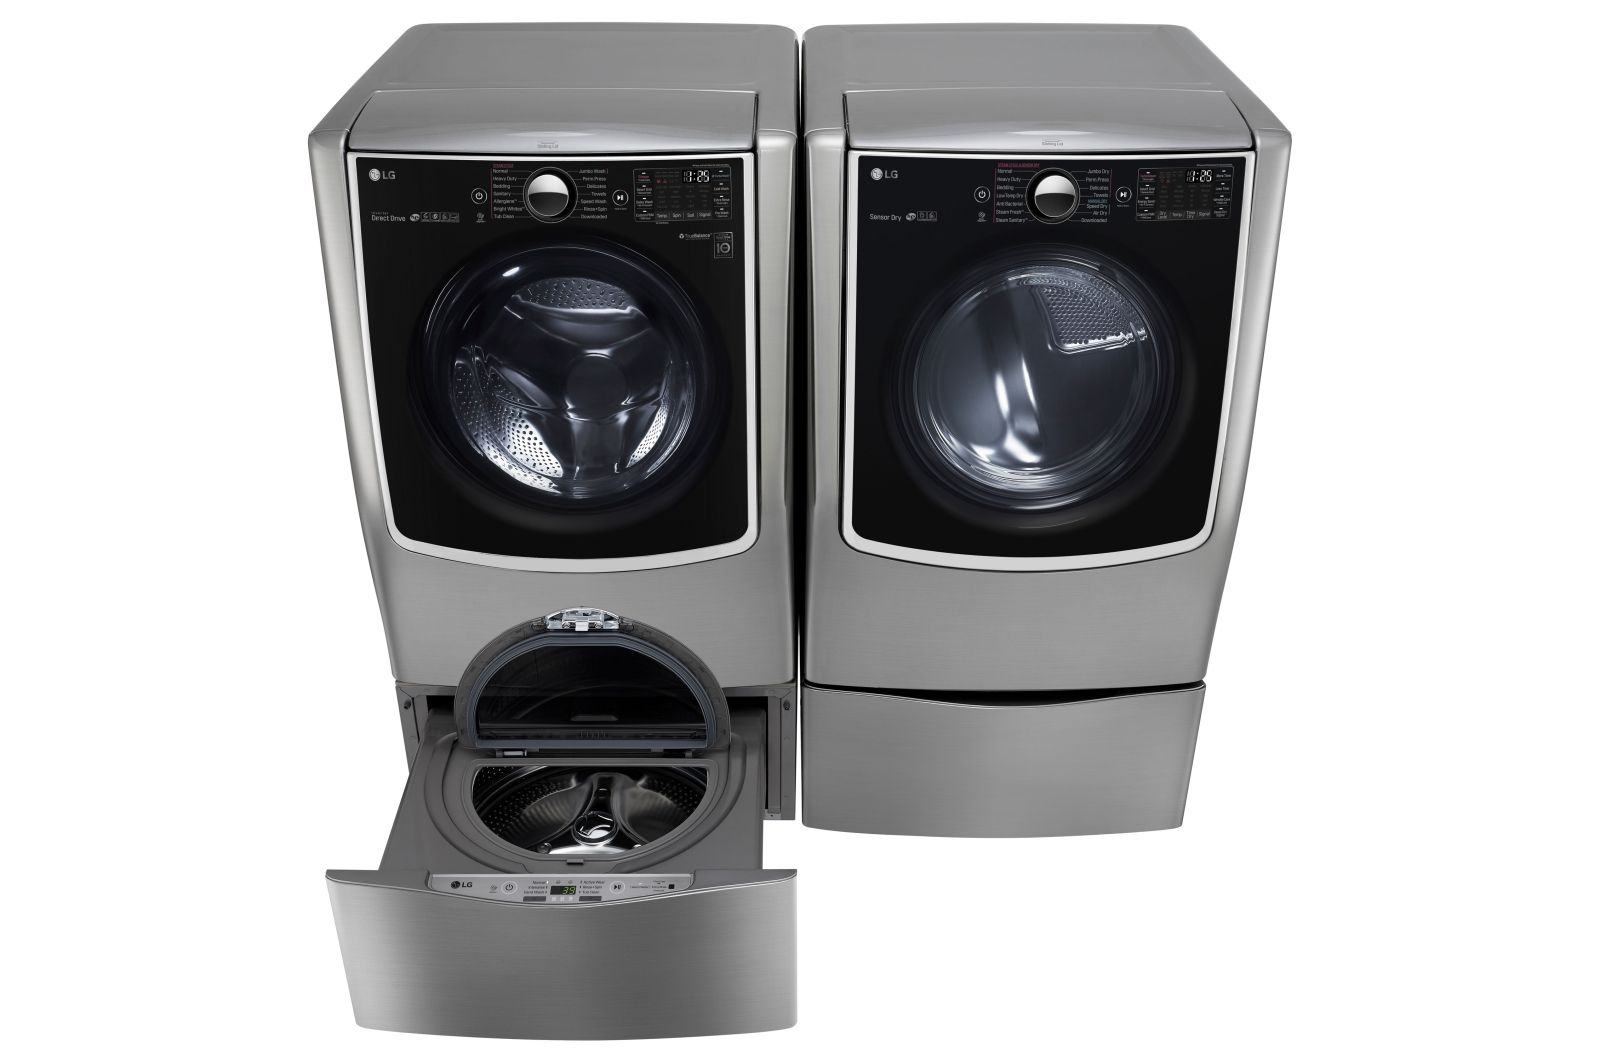 Lg 6 2 Total Capacity Lg Twinwash Bundle With Lg Sidekick And Electric Dryer Bundle Lg Usa Electric Dryers Lg Washer And Dryer Gas Dryer